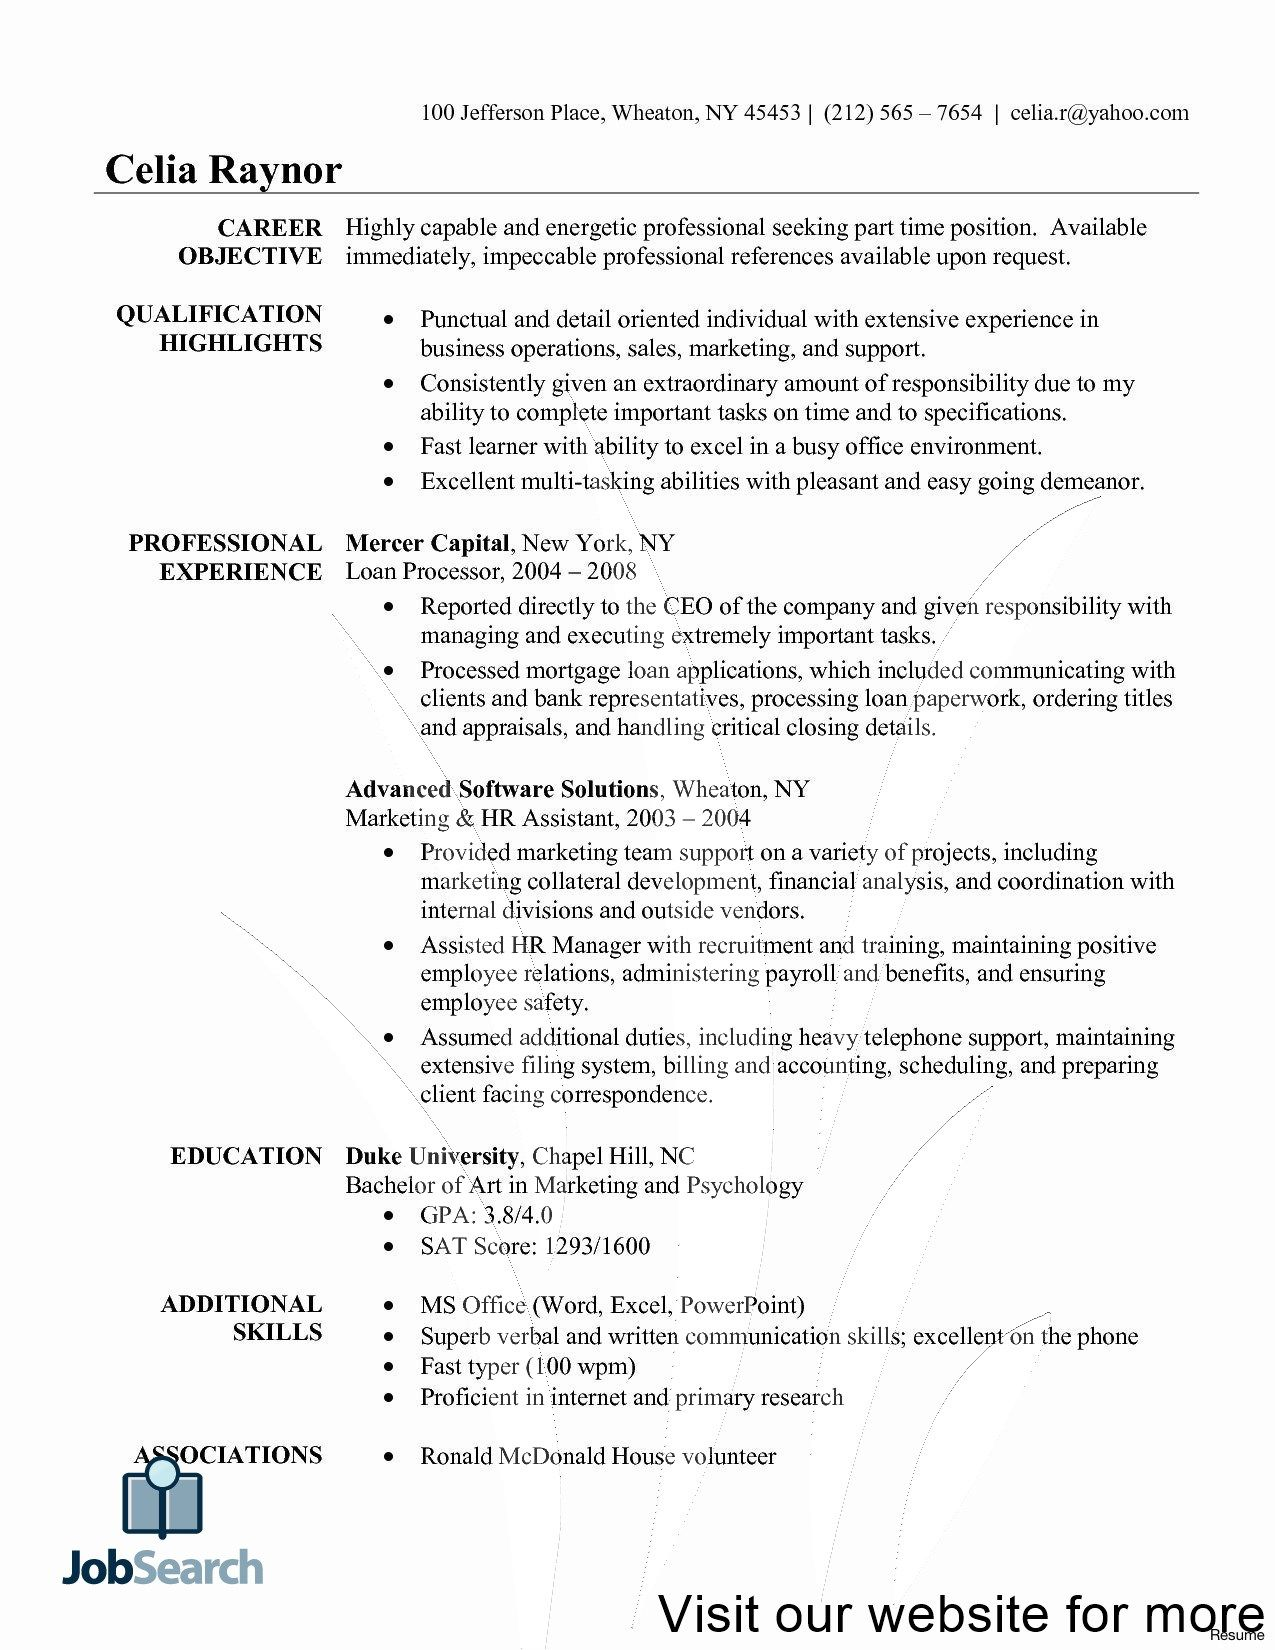 resume template cover letter Professional in 2020 Resume